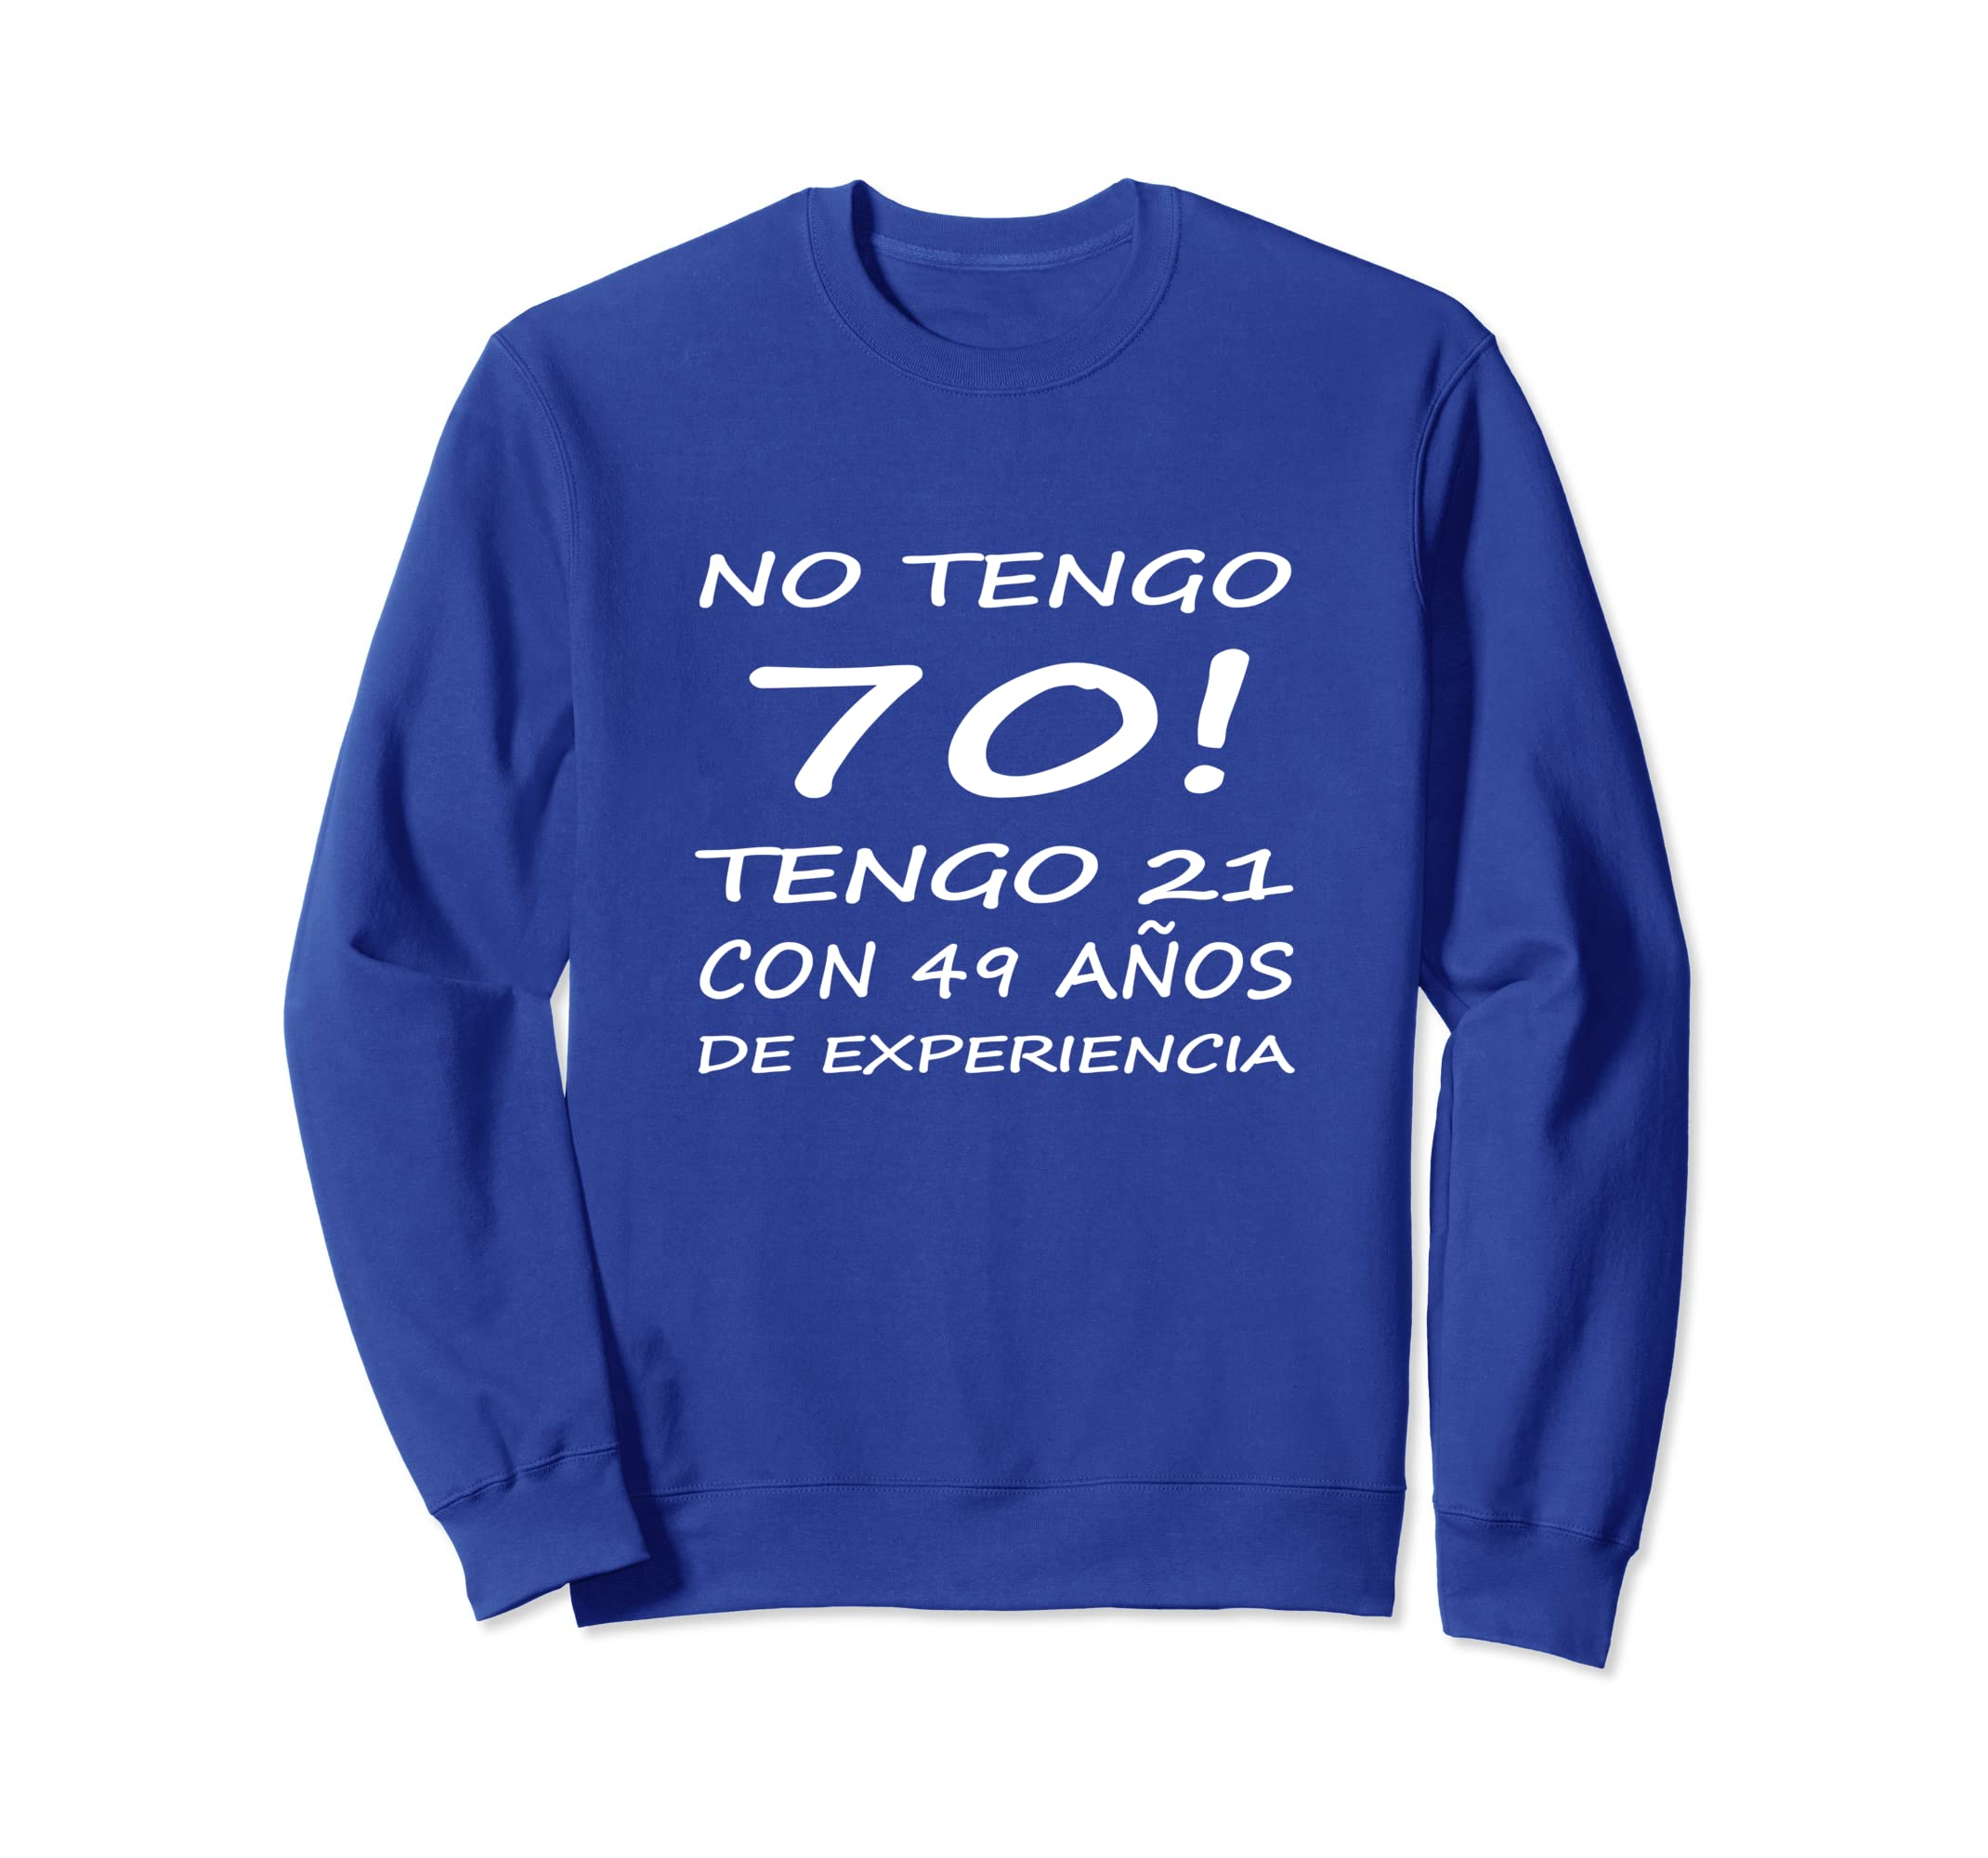 Amazon.com: Sueter No Tengo 70 Tengo 21 1949 Cumpleanos 70 T Shirt: Clothing